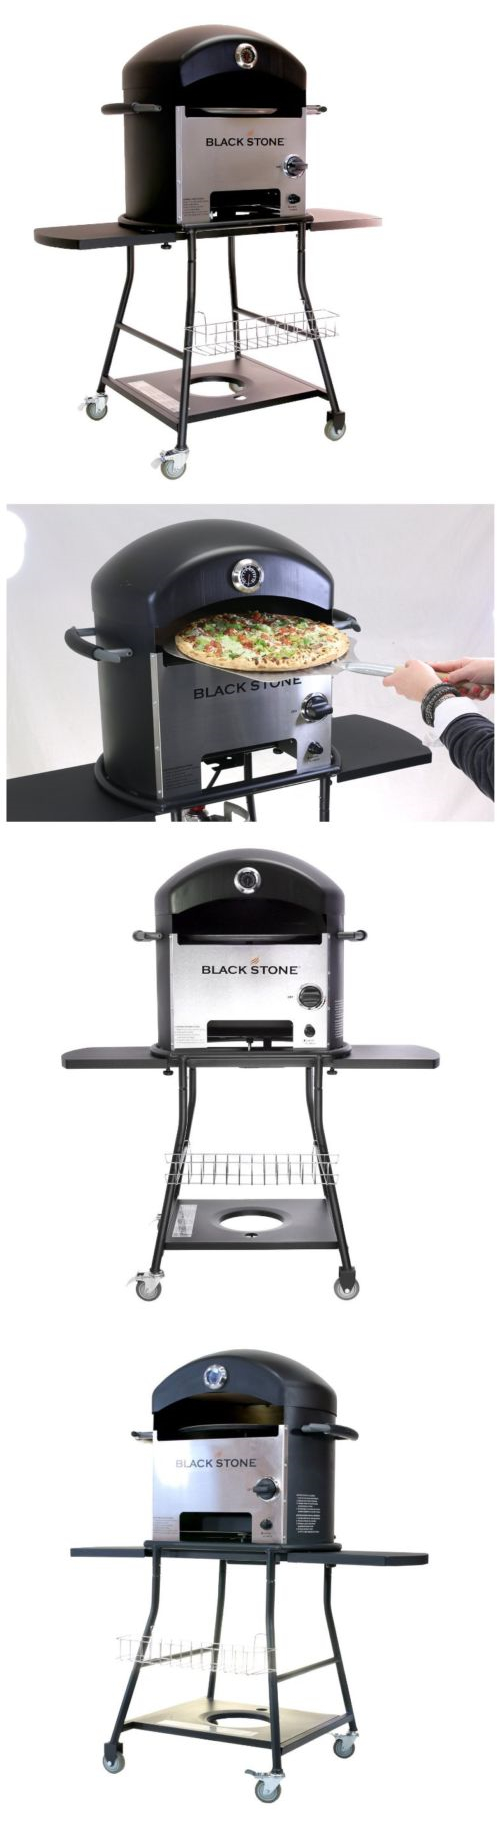 Camping Ovens 181387: Blackstone Outdoor Pizza Oven 60,000 Btu ...